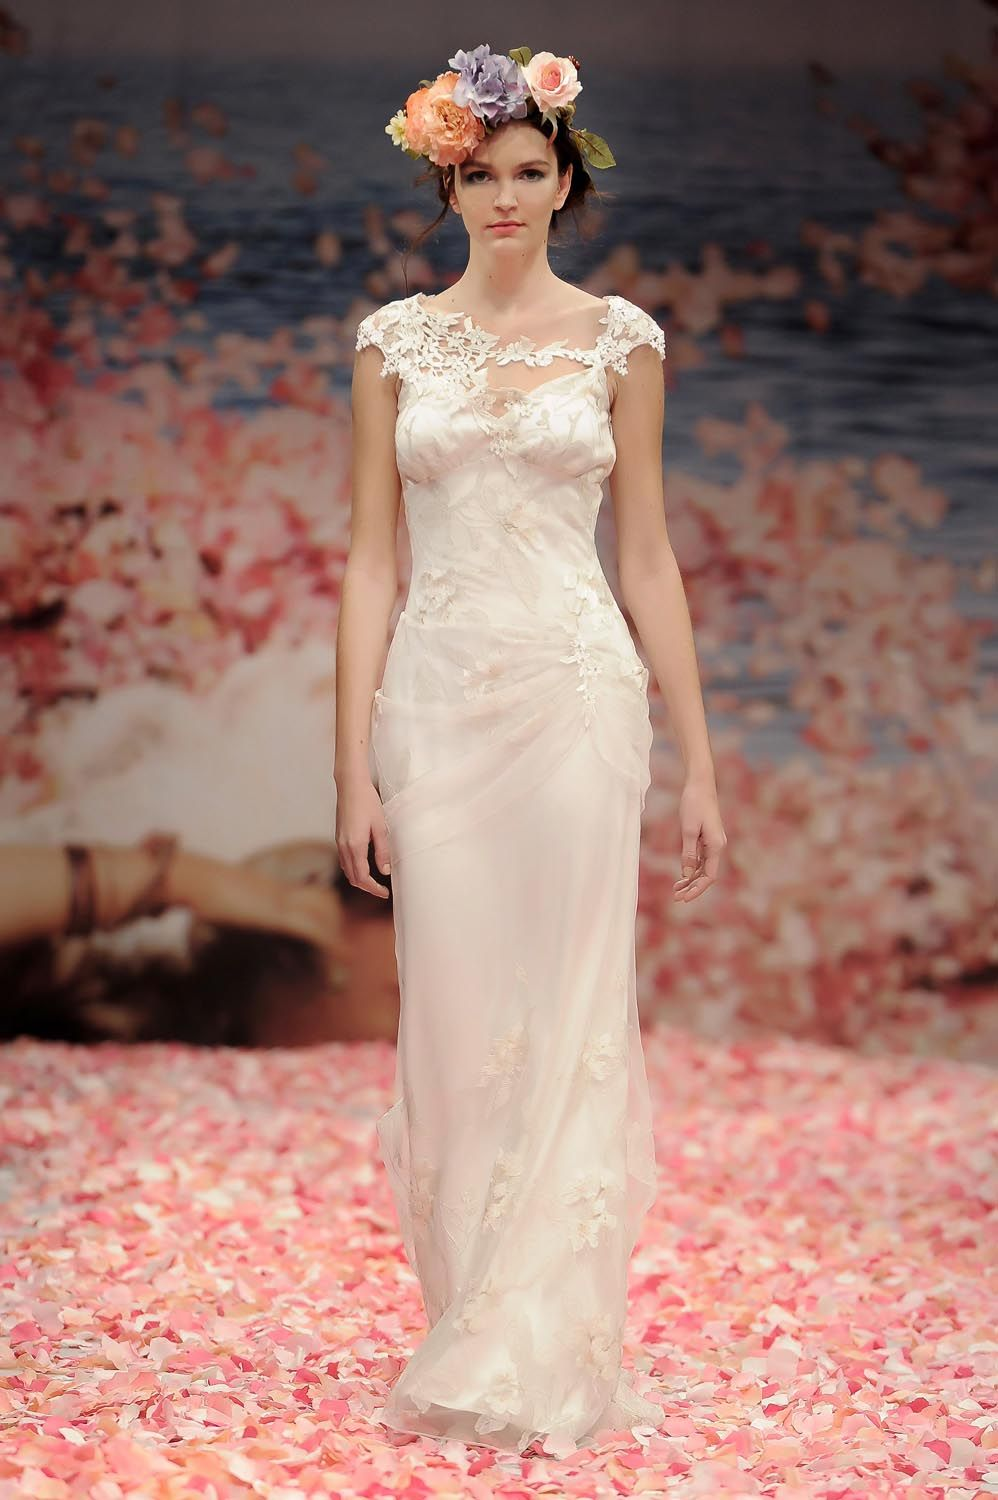 ADAGIO Wedding Gown by Claire Pettibone. Draped ivory olive branch embroidery with pearl silk and jeweled guipure vine embellishments.